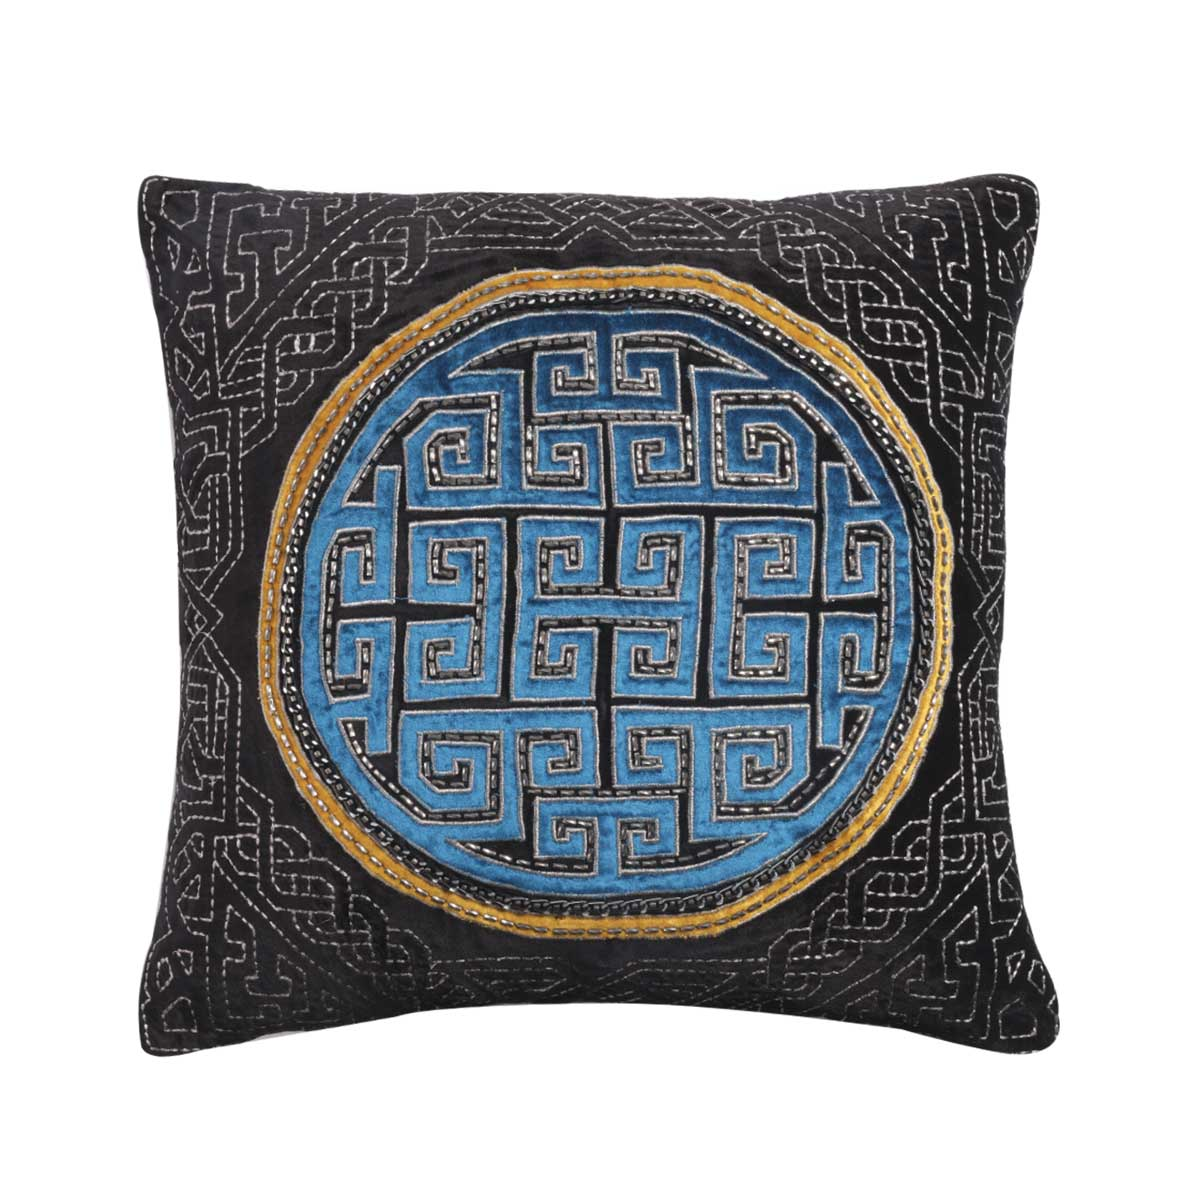 celtaidd velvet cushion cover